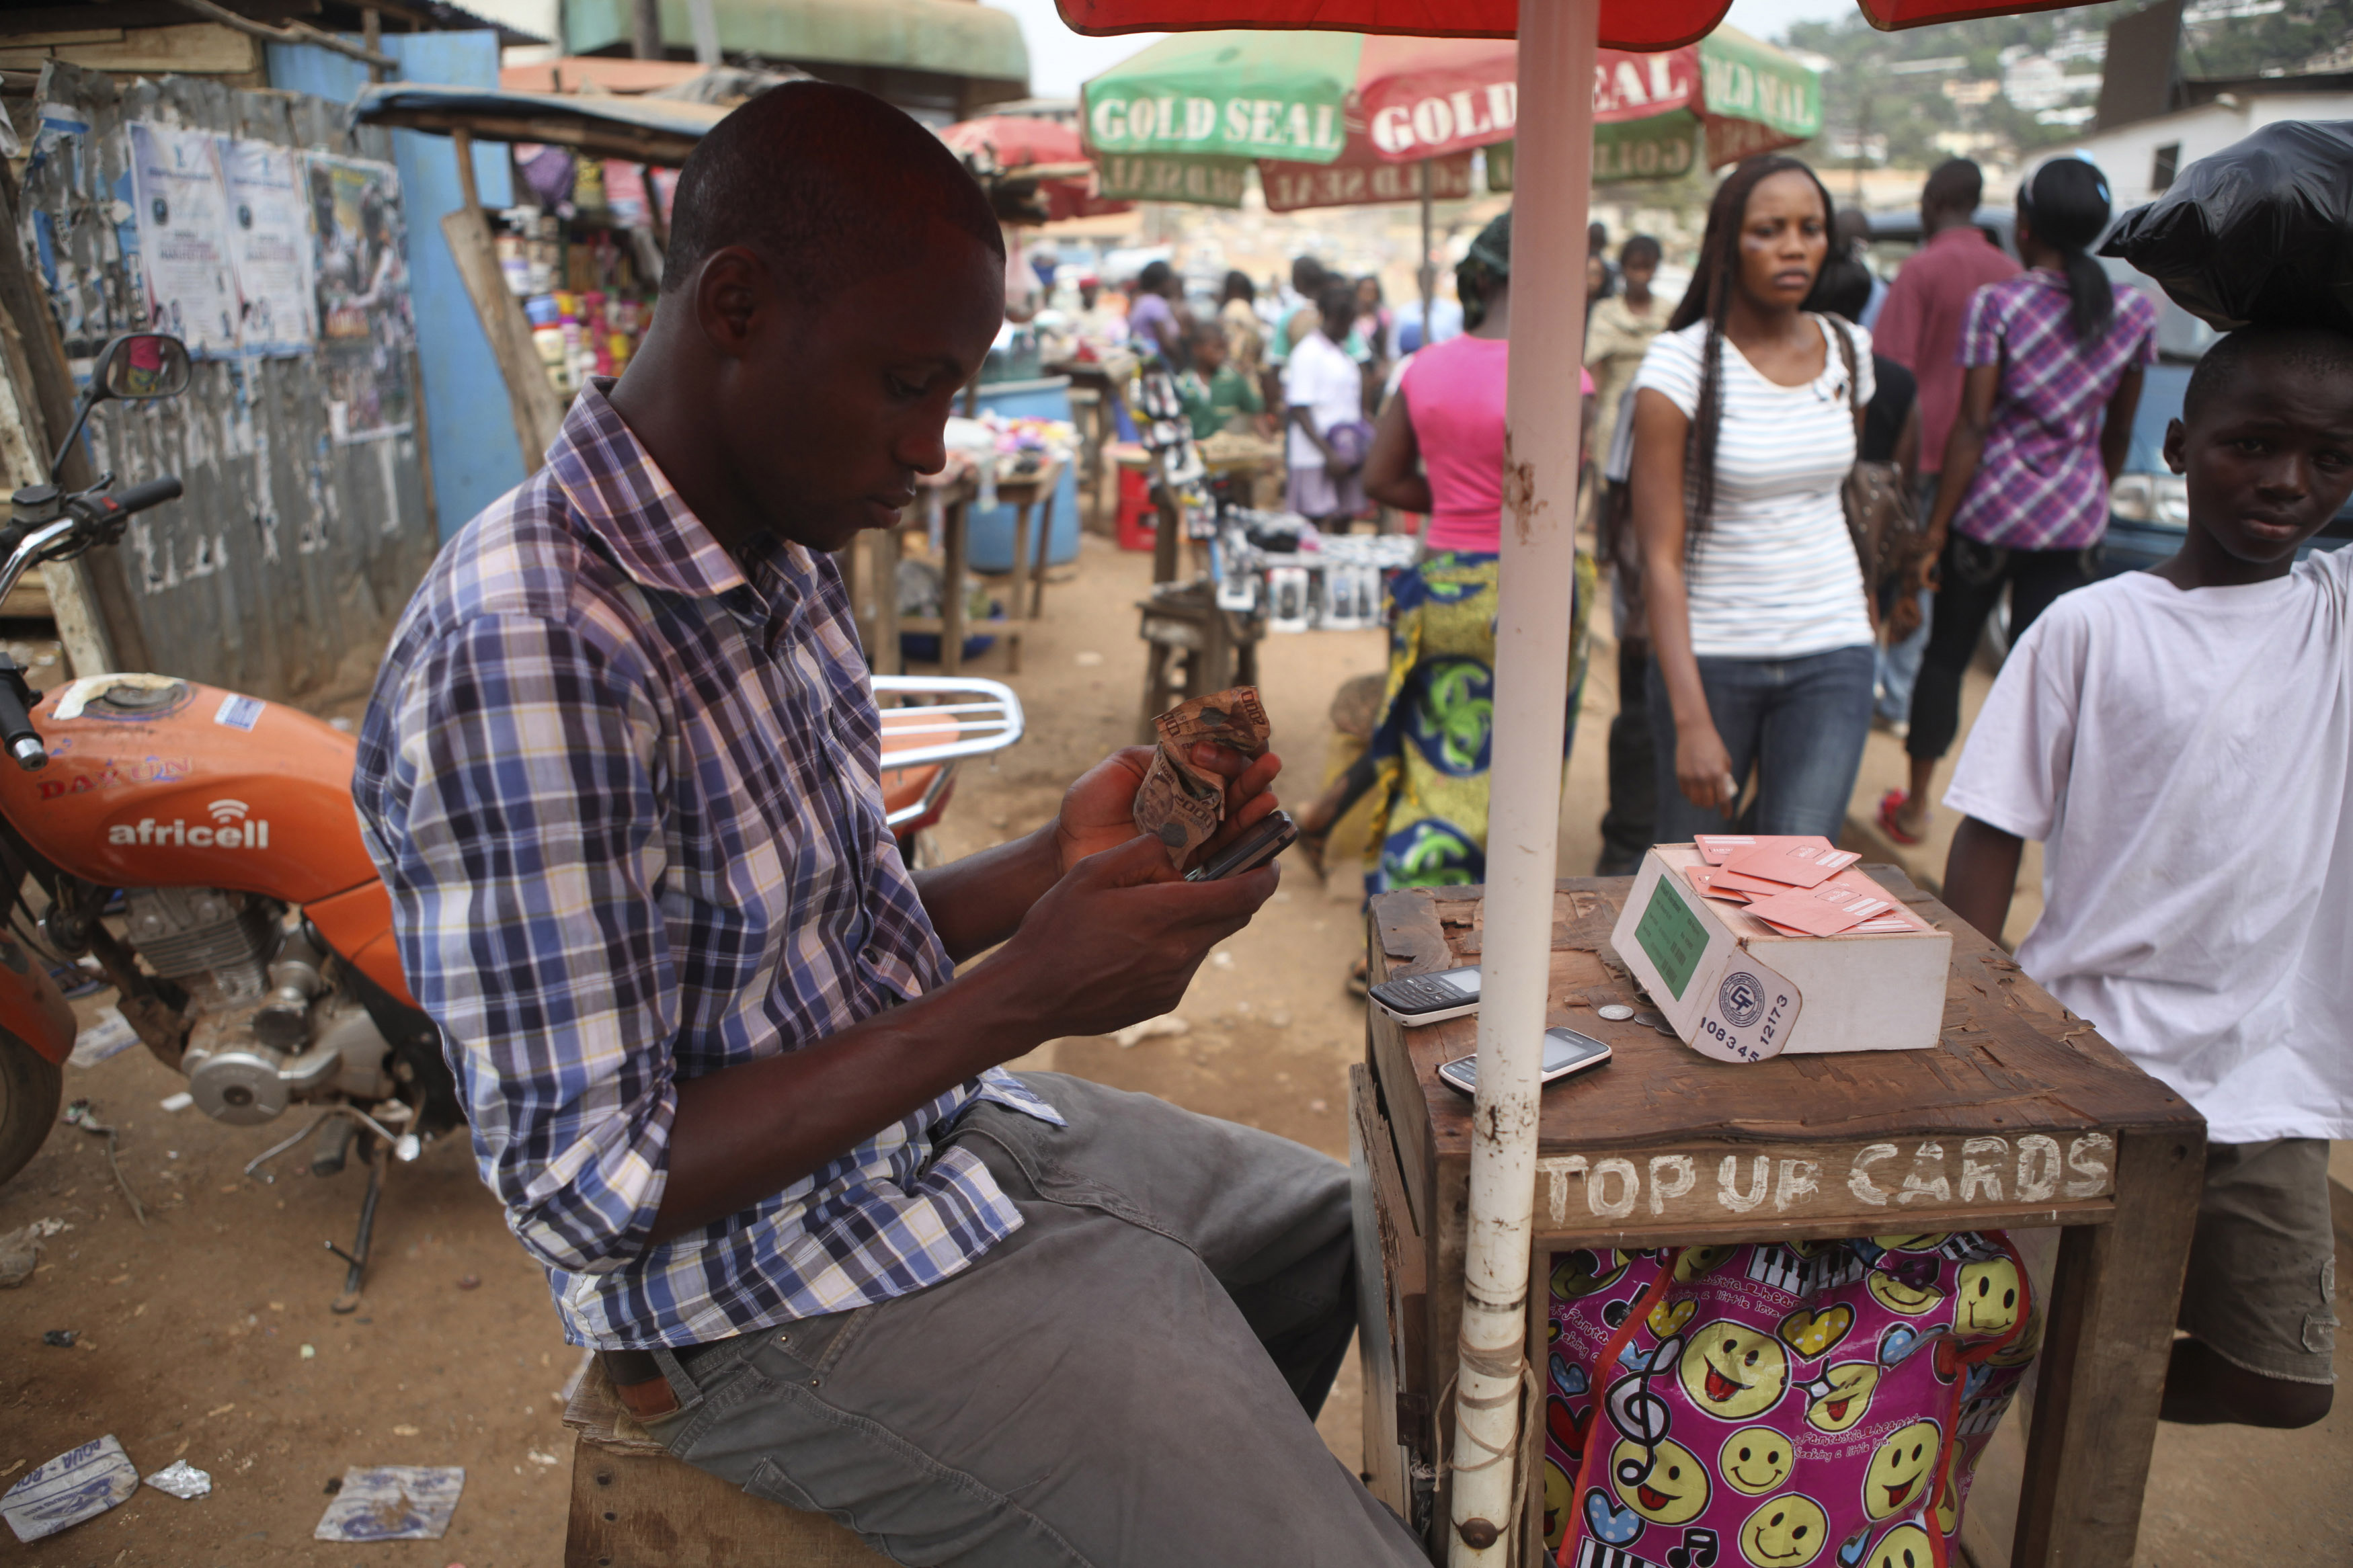 A Chinese super app is facing claims of predatory consumer lending in Nigeria, Kenya and India